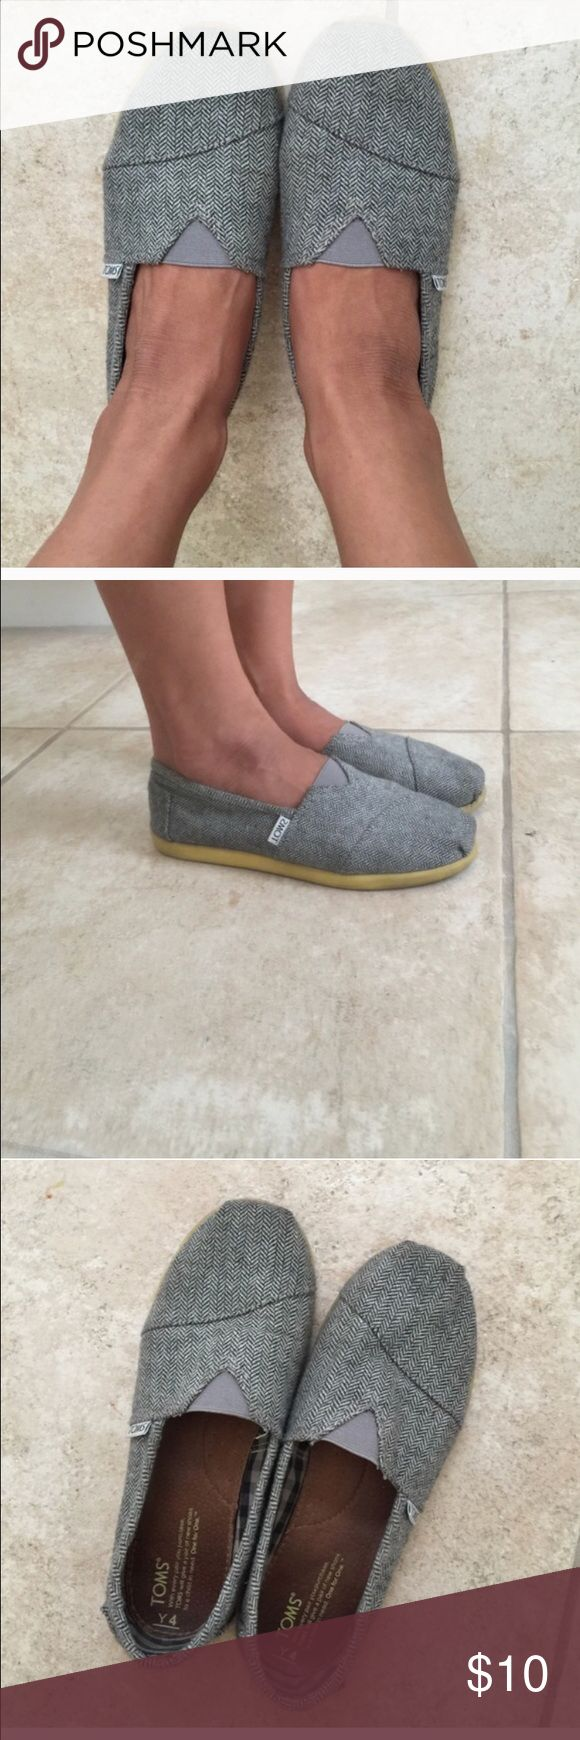 Toms black and white slip on shoes 6.5 women's Women's 6.5 toms slip on shoes used condition TOMS Shoes Flats & Loafers